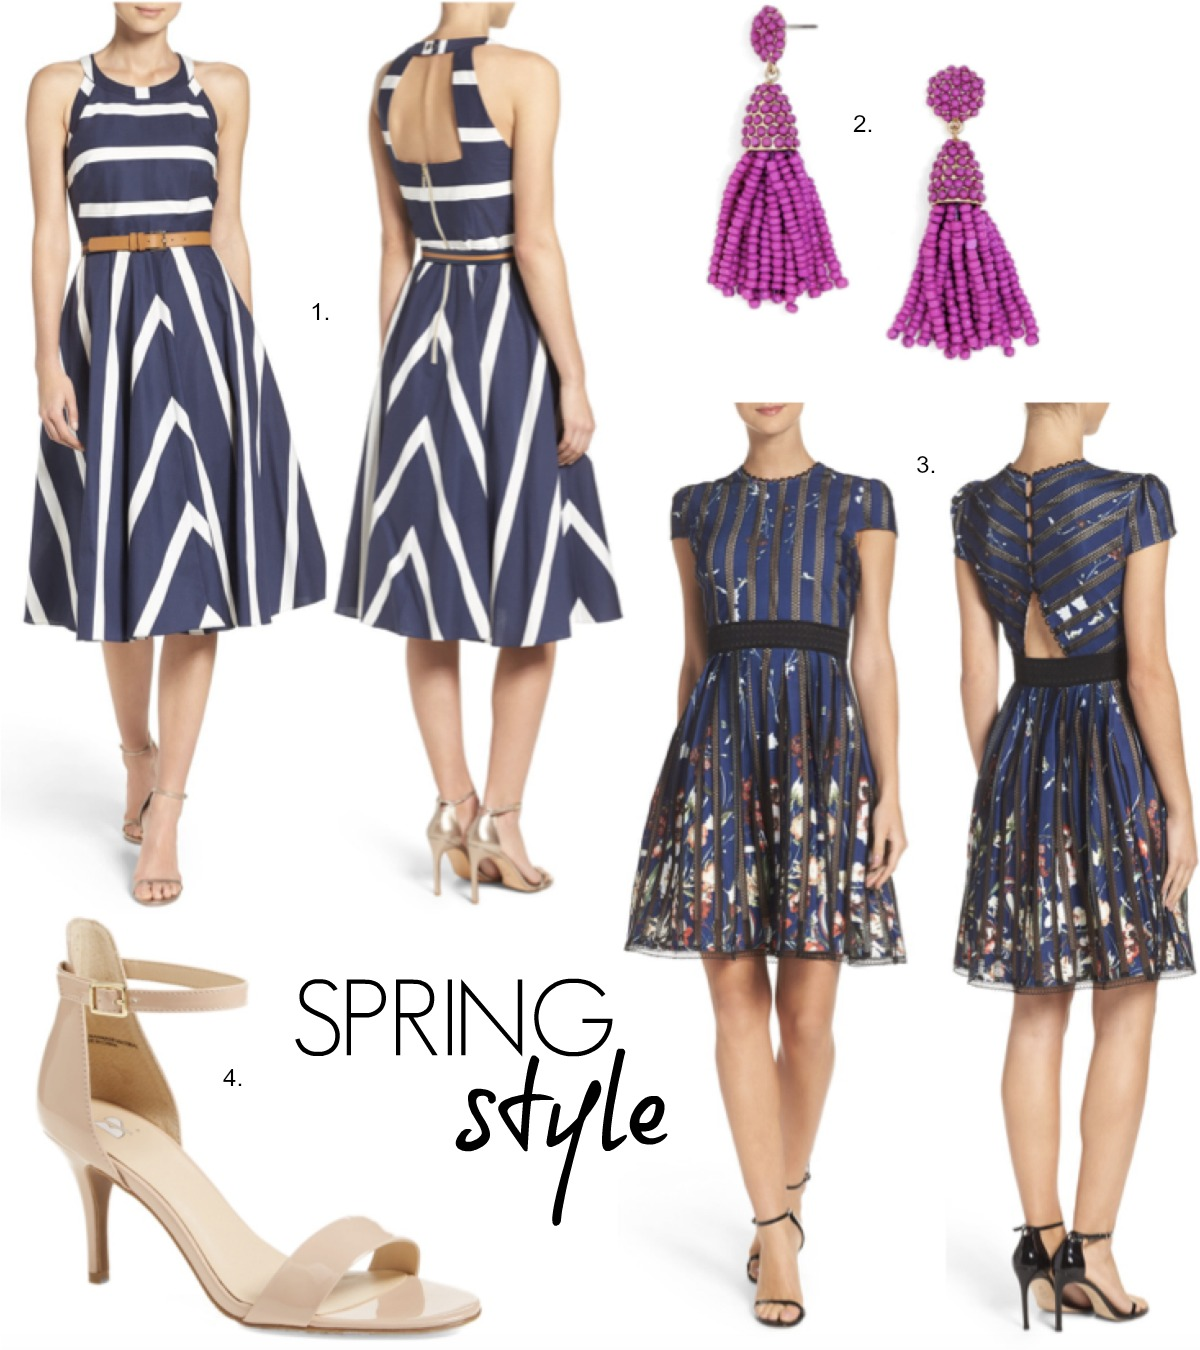 stripe Spring dresses and nude sandals fashion trends best tassel earrings baublebar